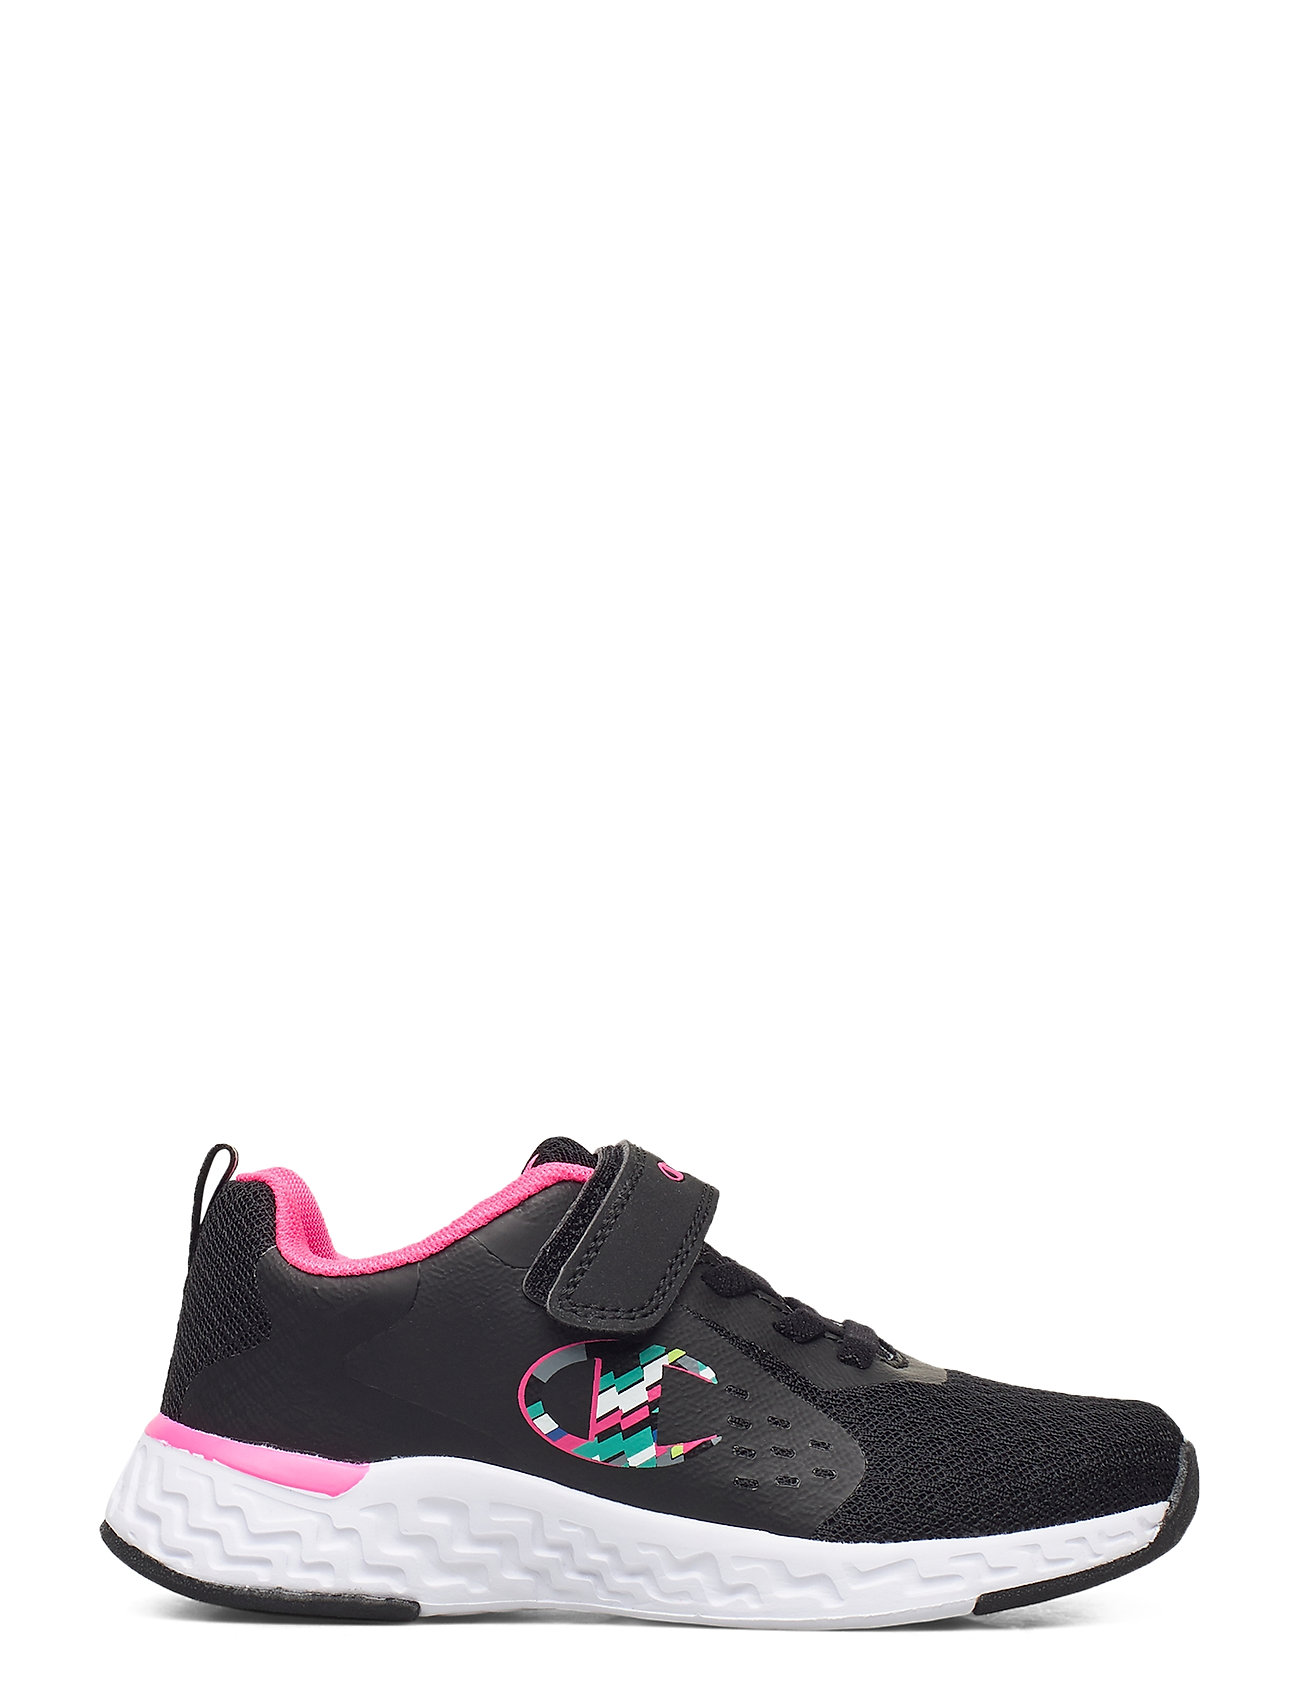 Image of Low Cut Shoe Bold G Ps Low-top Sneakers Sort Champion (3536417057)